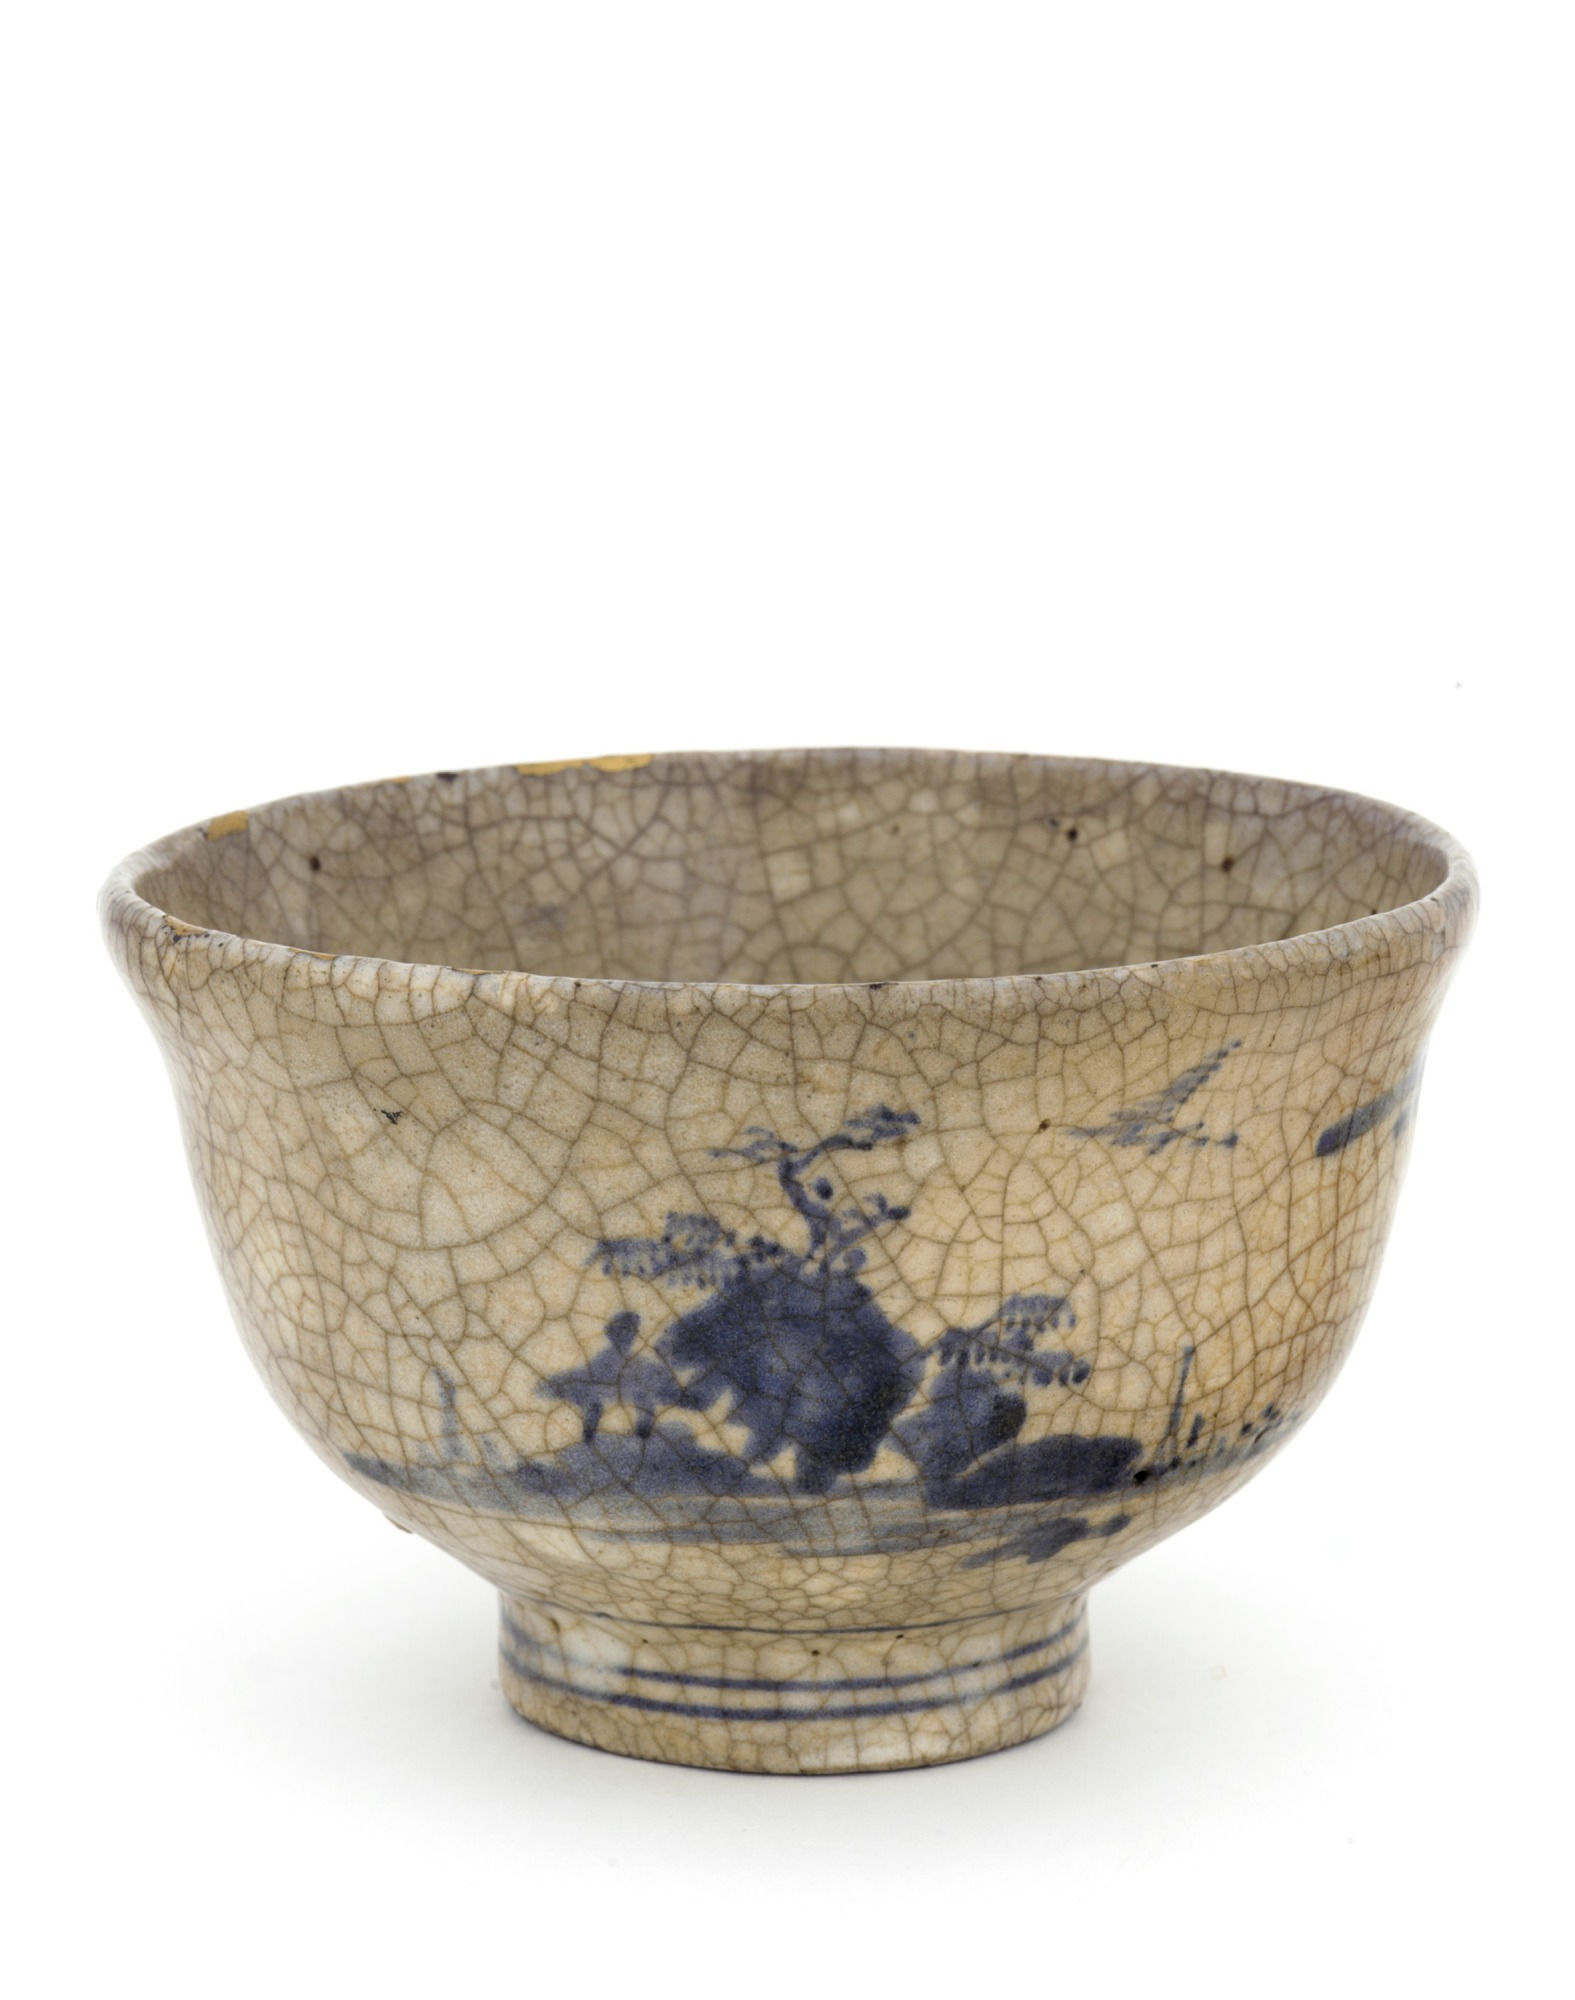 profile: Arita ware tea bowl with landscape design